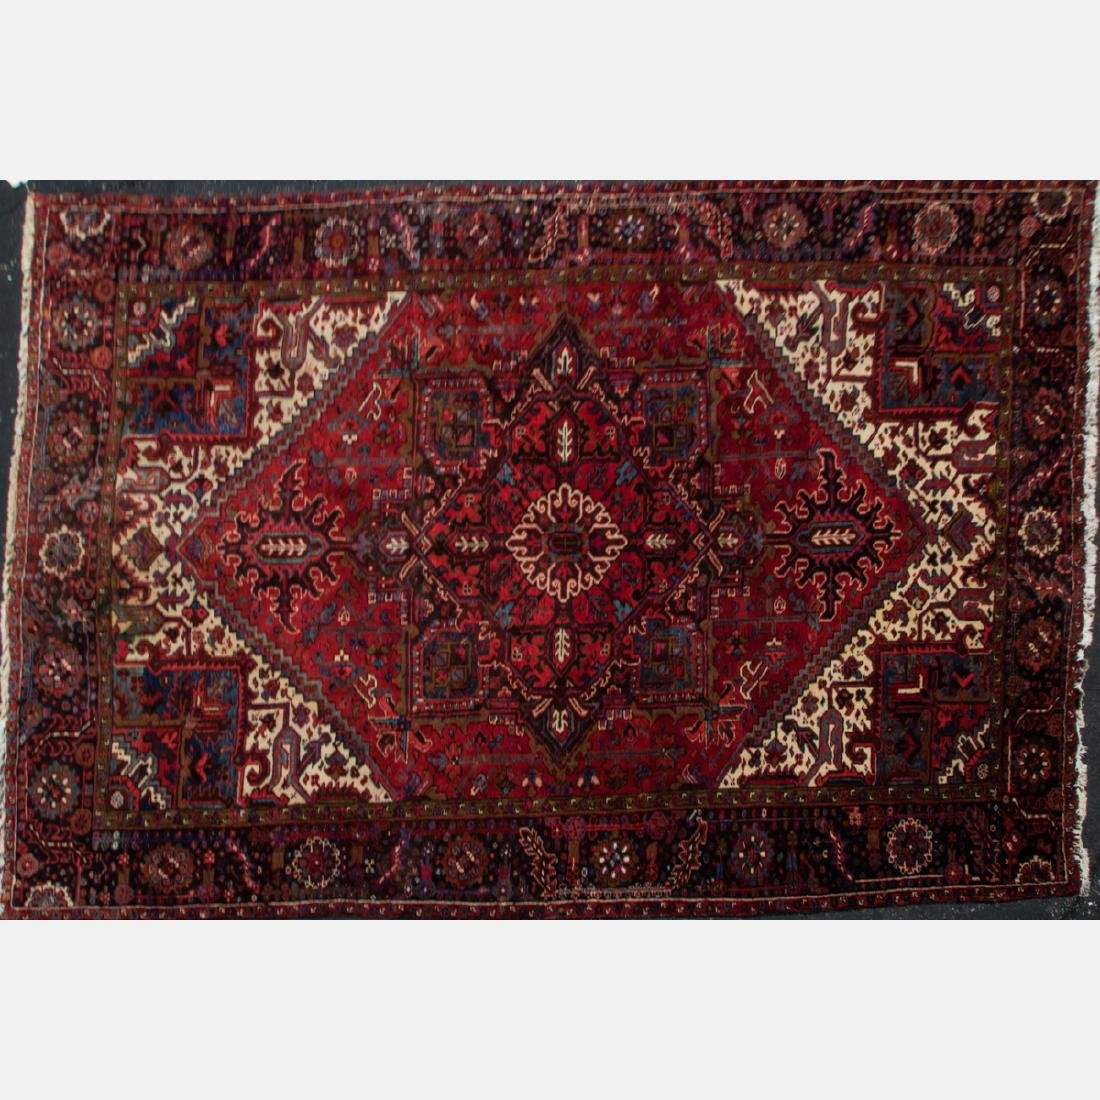 A Persian Wool Rug, 20th Century.